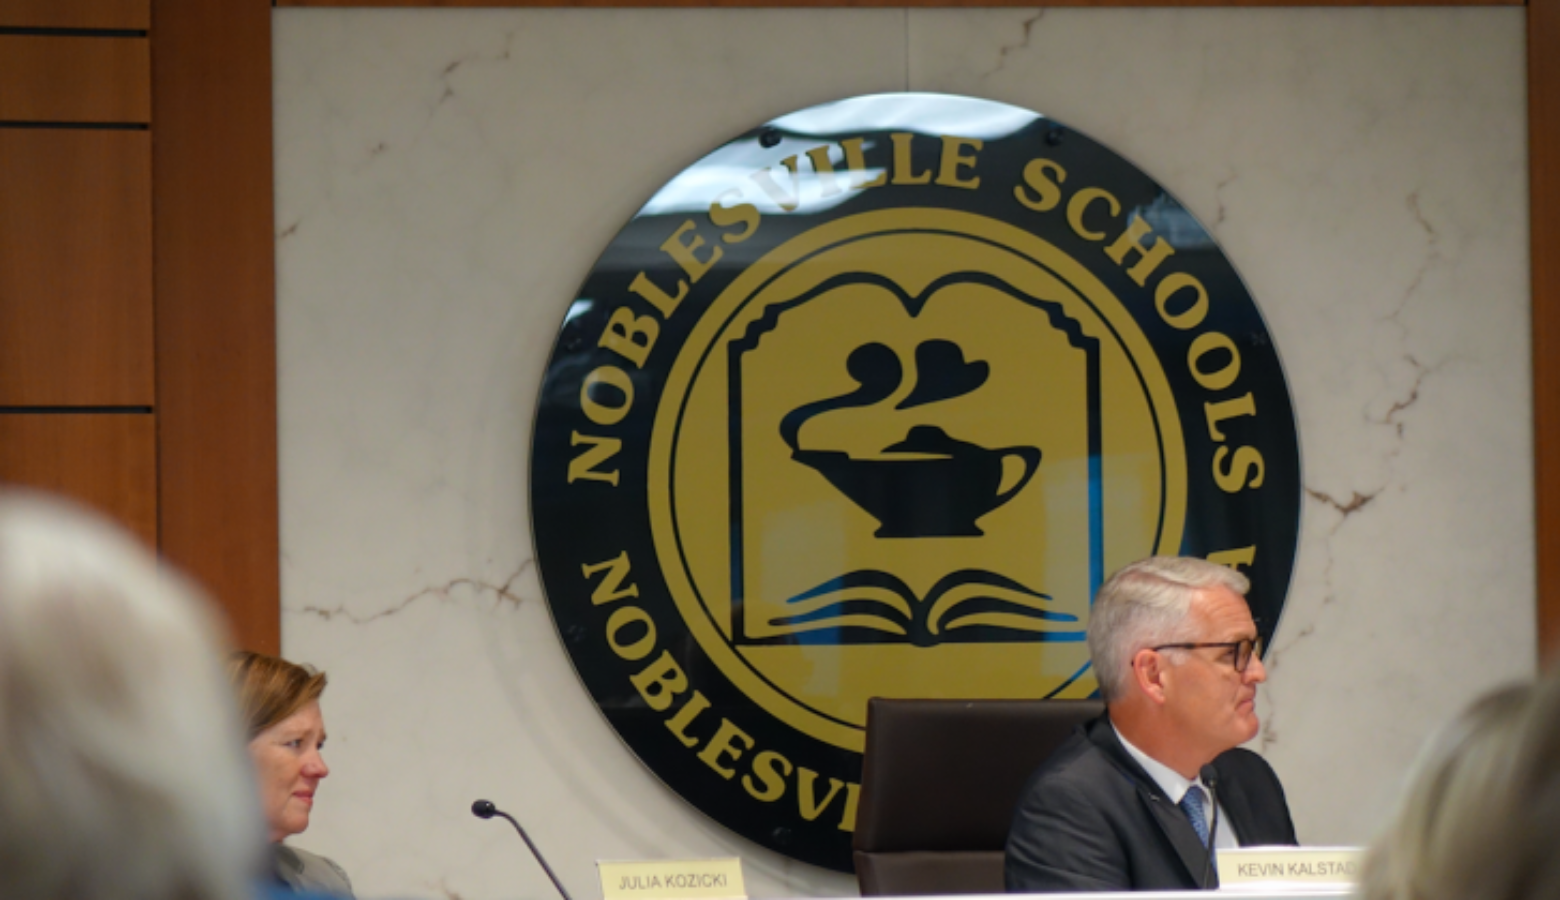 Noblesville School Board members listen as parents talk about safety concerns during a meeting on Tuesday, June 12, 2018 at the district office.